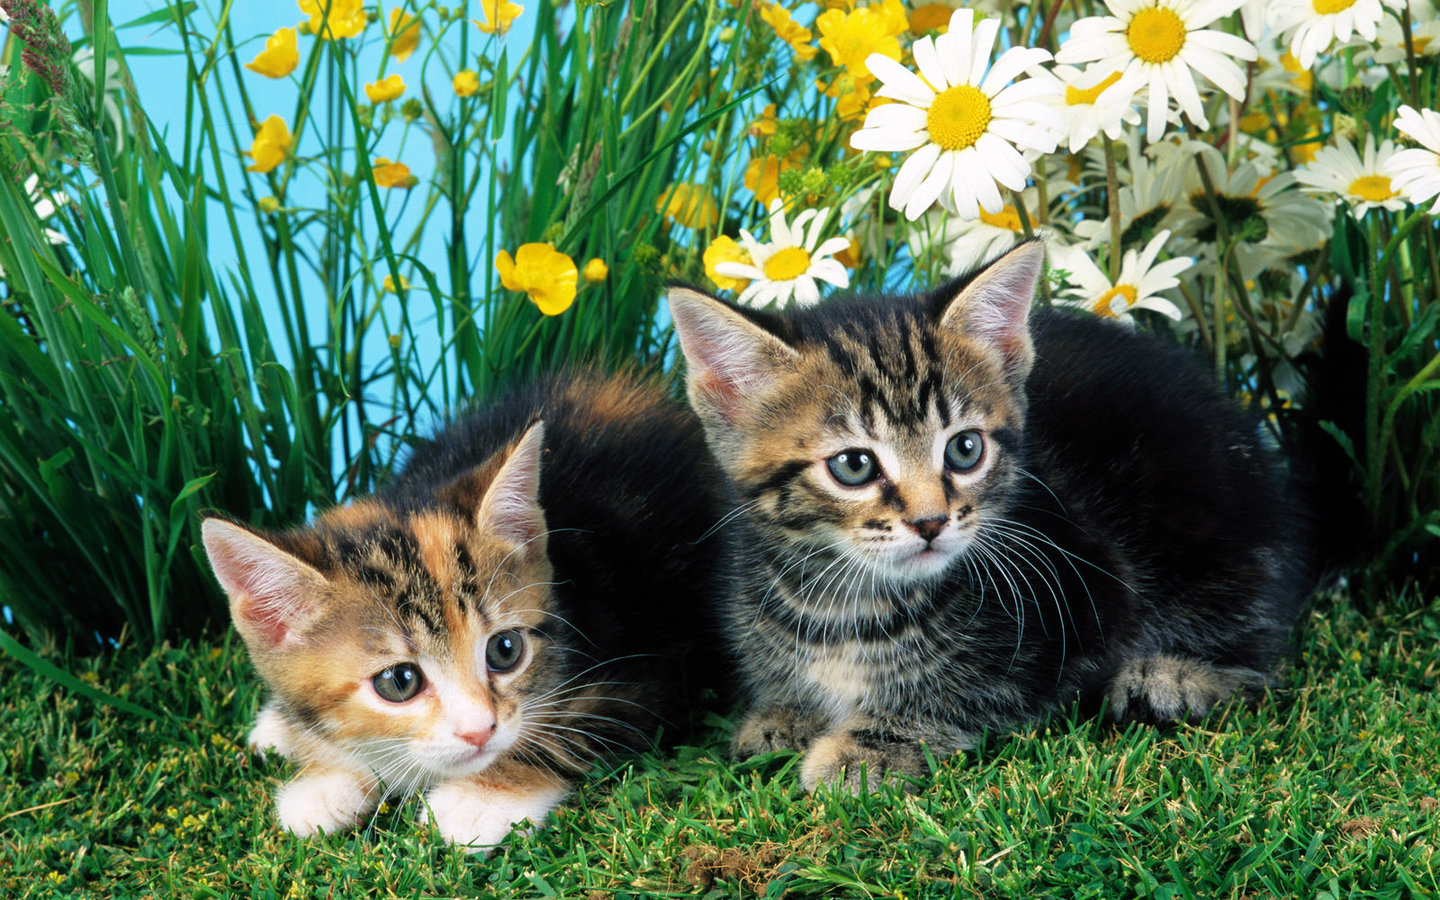 Kittens have daisies